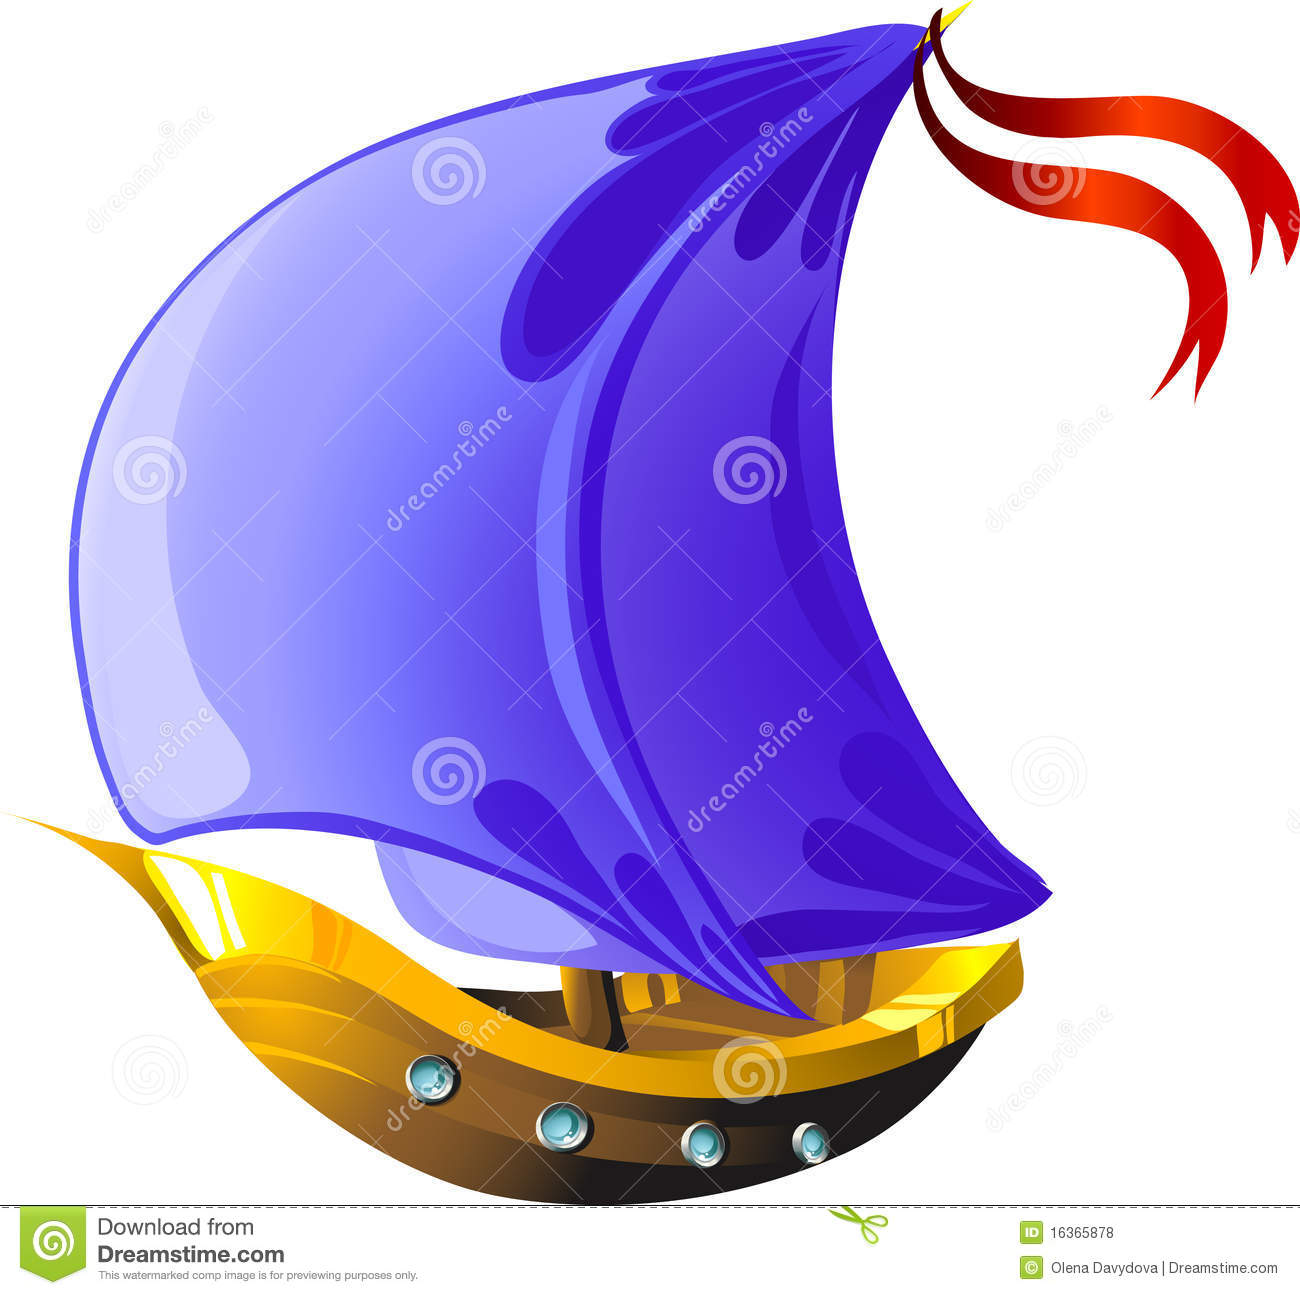 Sailboat pictures for nursery Melodramas Films - Filmsite. org